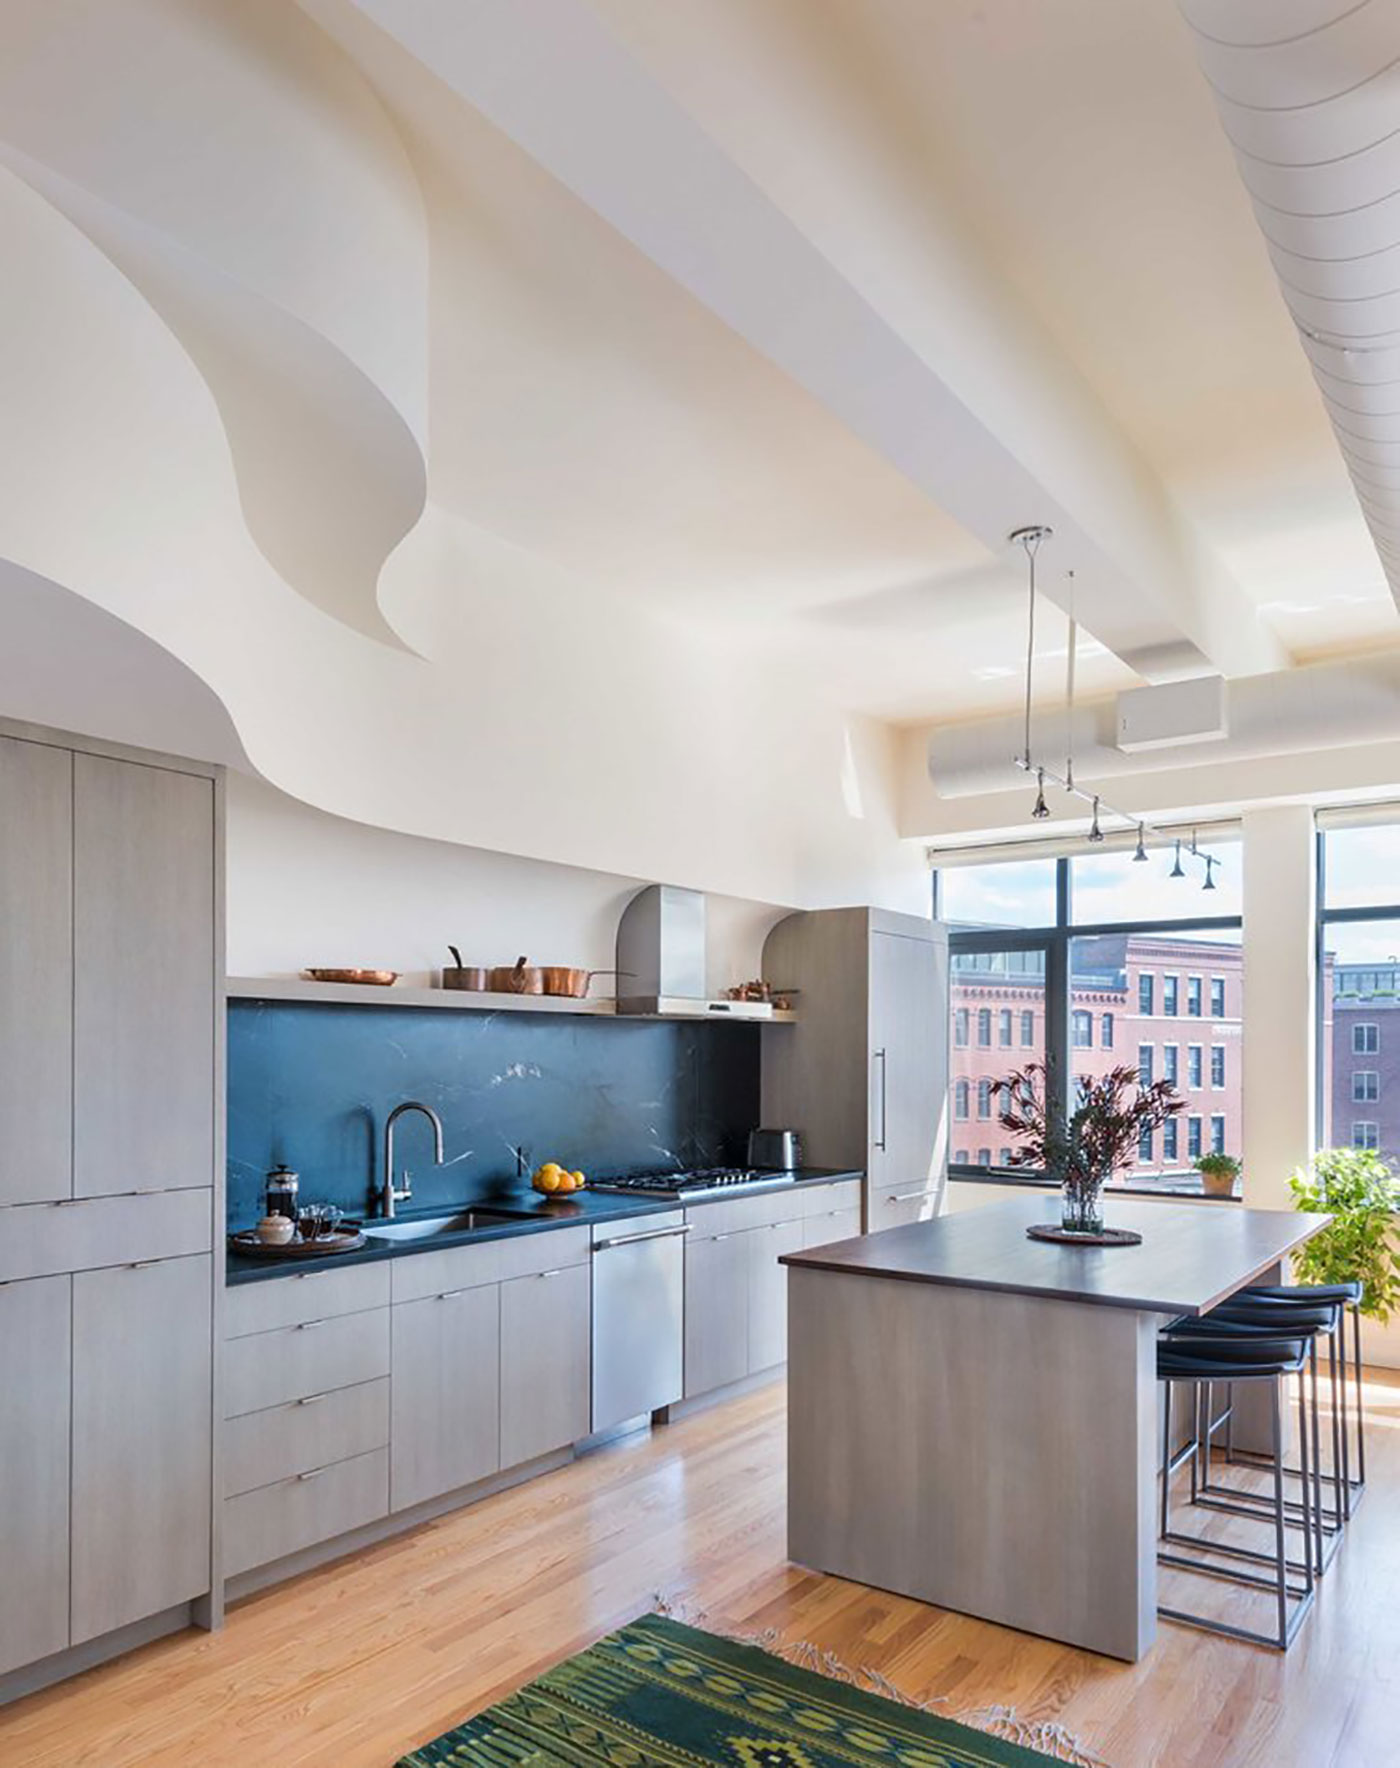 Contemporary makeover for an artist's loft kitchen